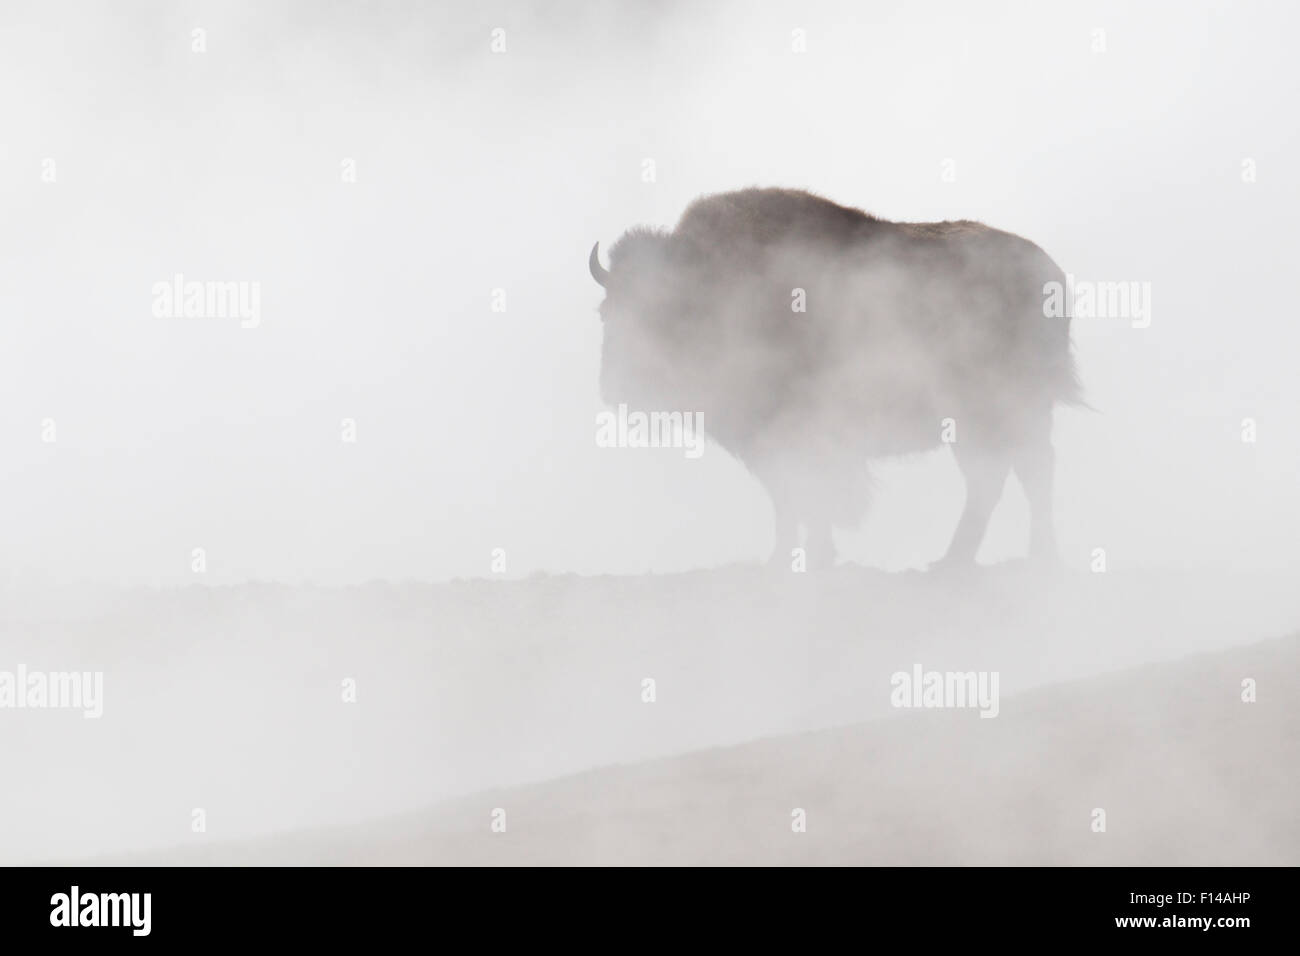 Bison (bison bison) in steam from hot springs, Yellowstone National Park, Wyoming, USA. Stock Photo